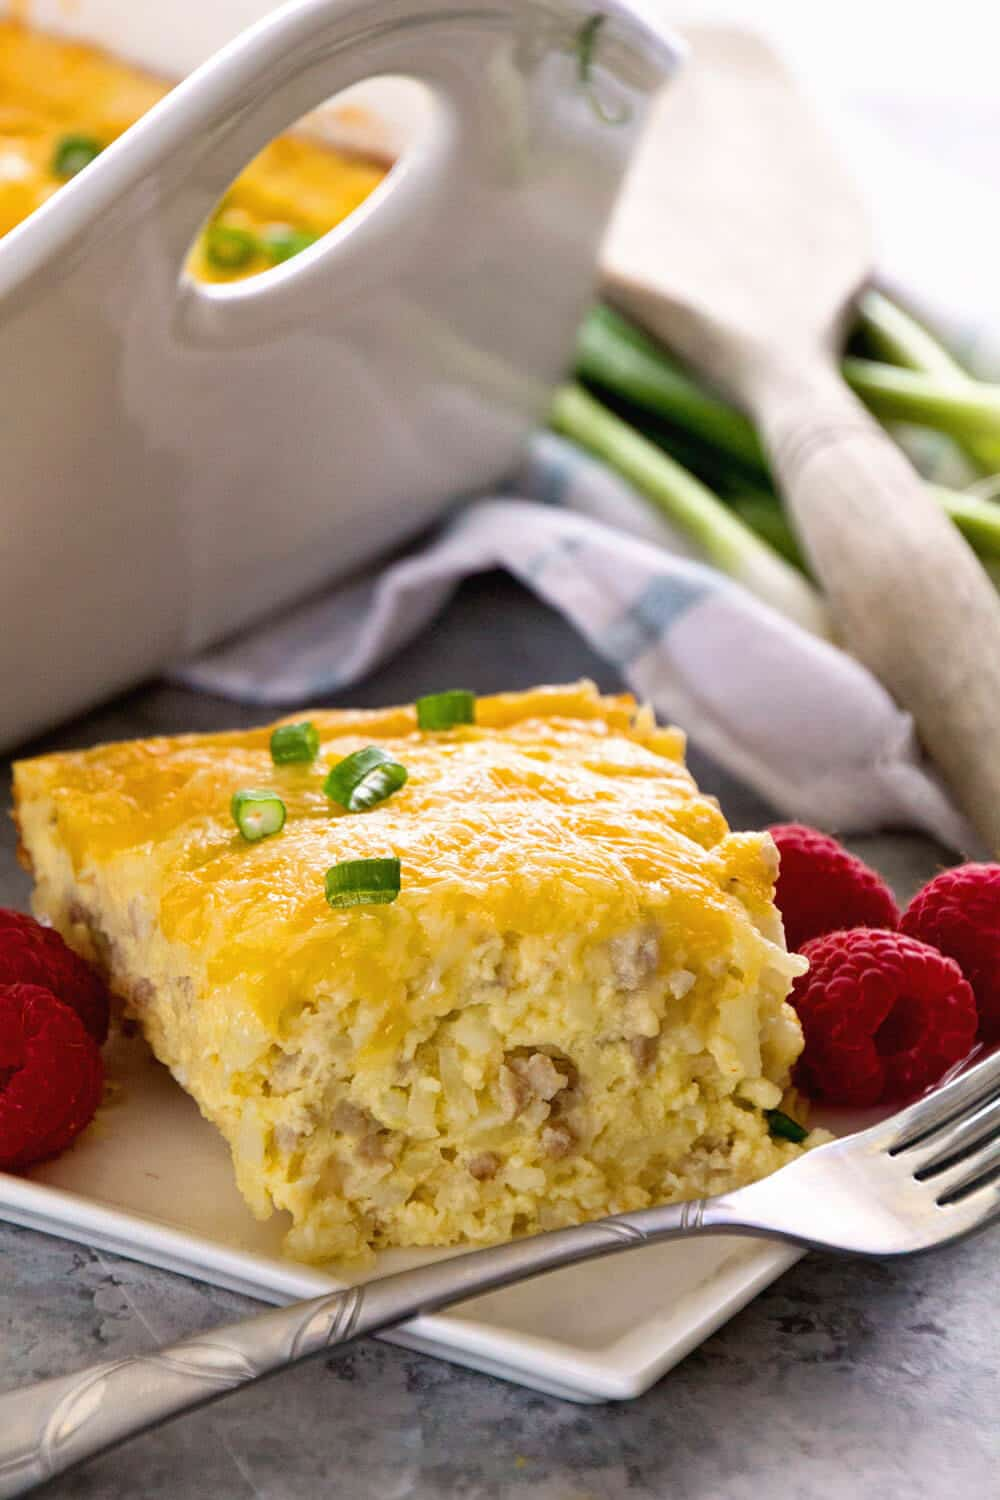 Sausage & Cheese Hash Brown Breakfast Casserole ~ Delicious Overnight Breakfast Casserole with Sausage, Hash Browns, Cheese and a Homemade Gravy! The BEST Breakfast Casserole Ever!